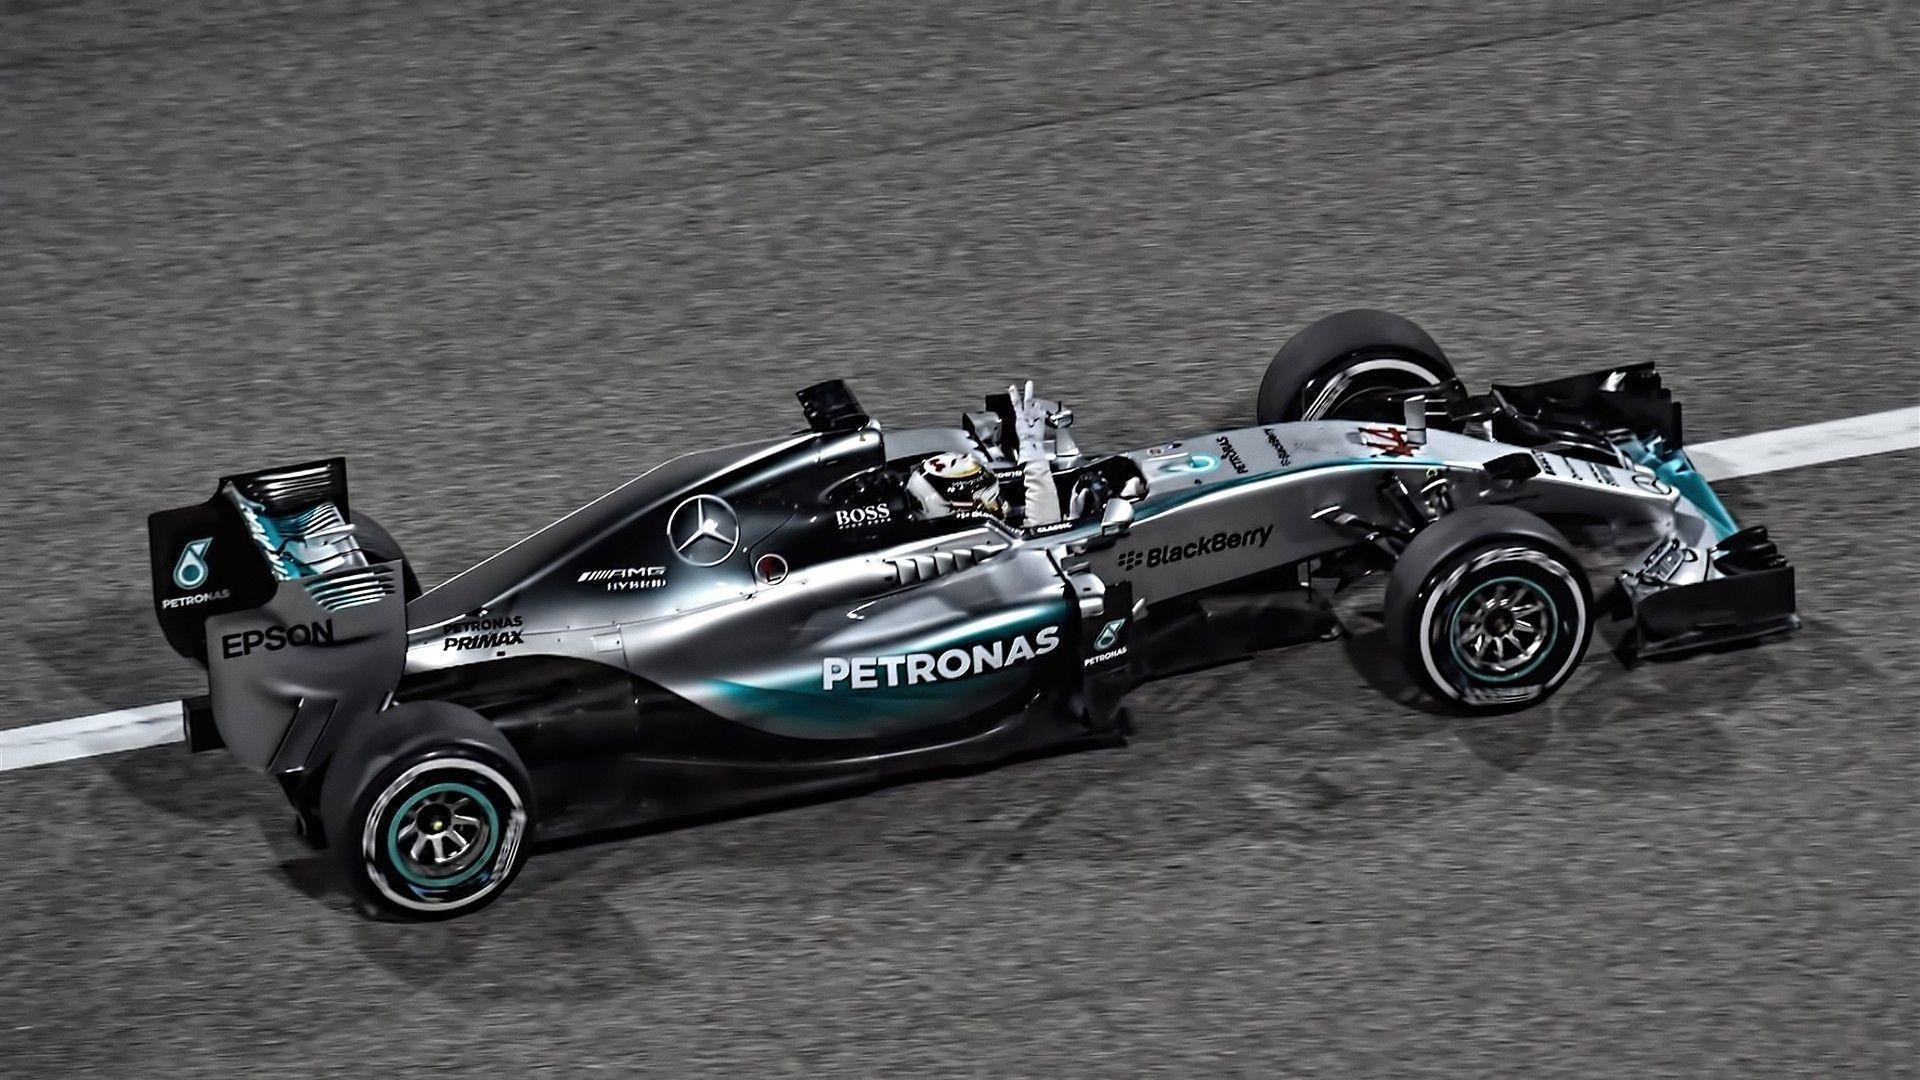 Mercedes F1 Wallpapers: 1920x1080 Wallpapers HD F1 2016